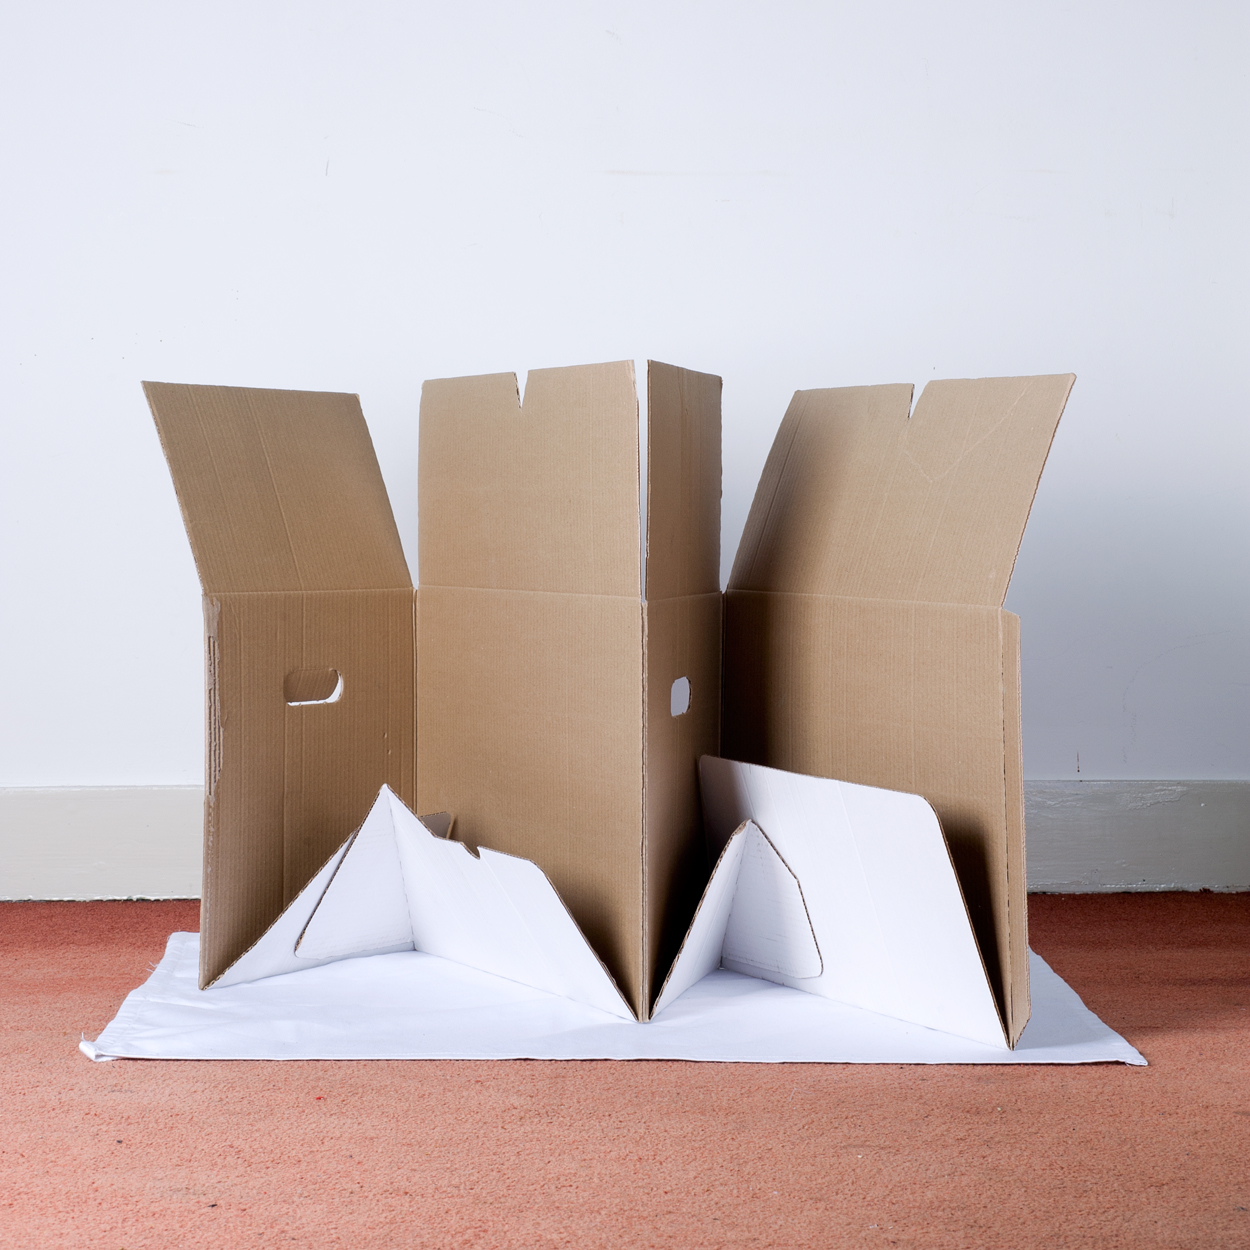 03-The-Boxes2.jpg